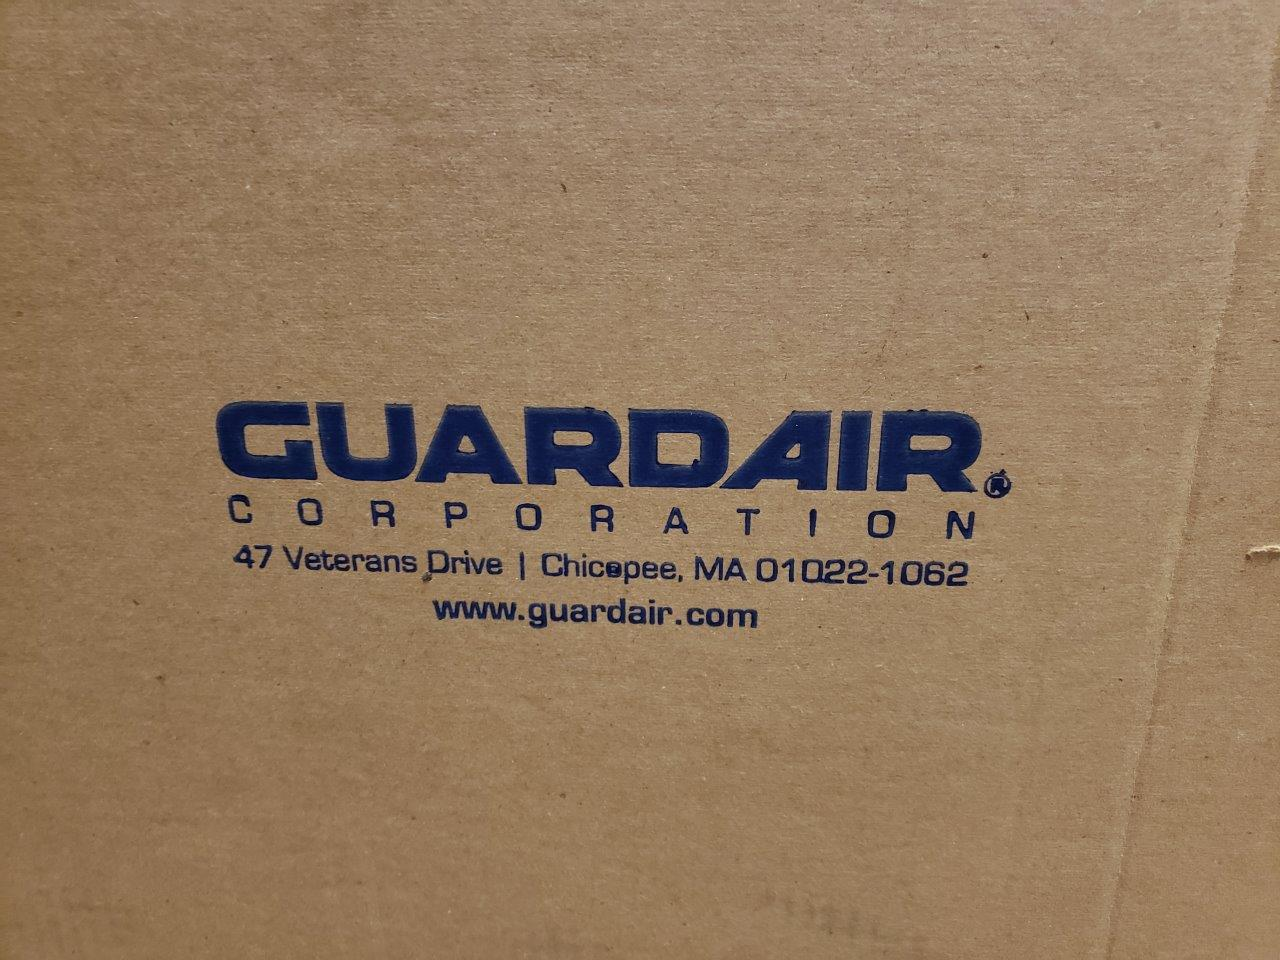 Guardair Pneumatic Vacuum Generating Head N552BK for Top of 55 Gallon Drum, Dual B Venturi, 2 inch Inlet and Attachment Kit like nortech tornado